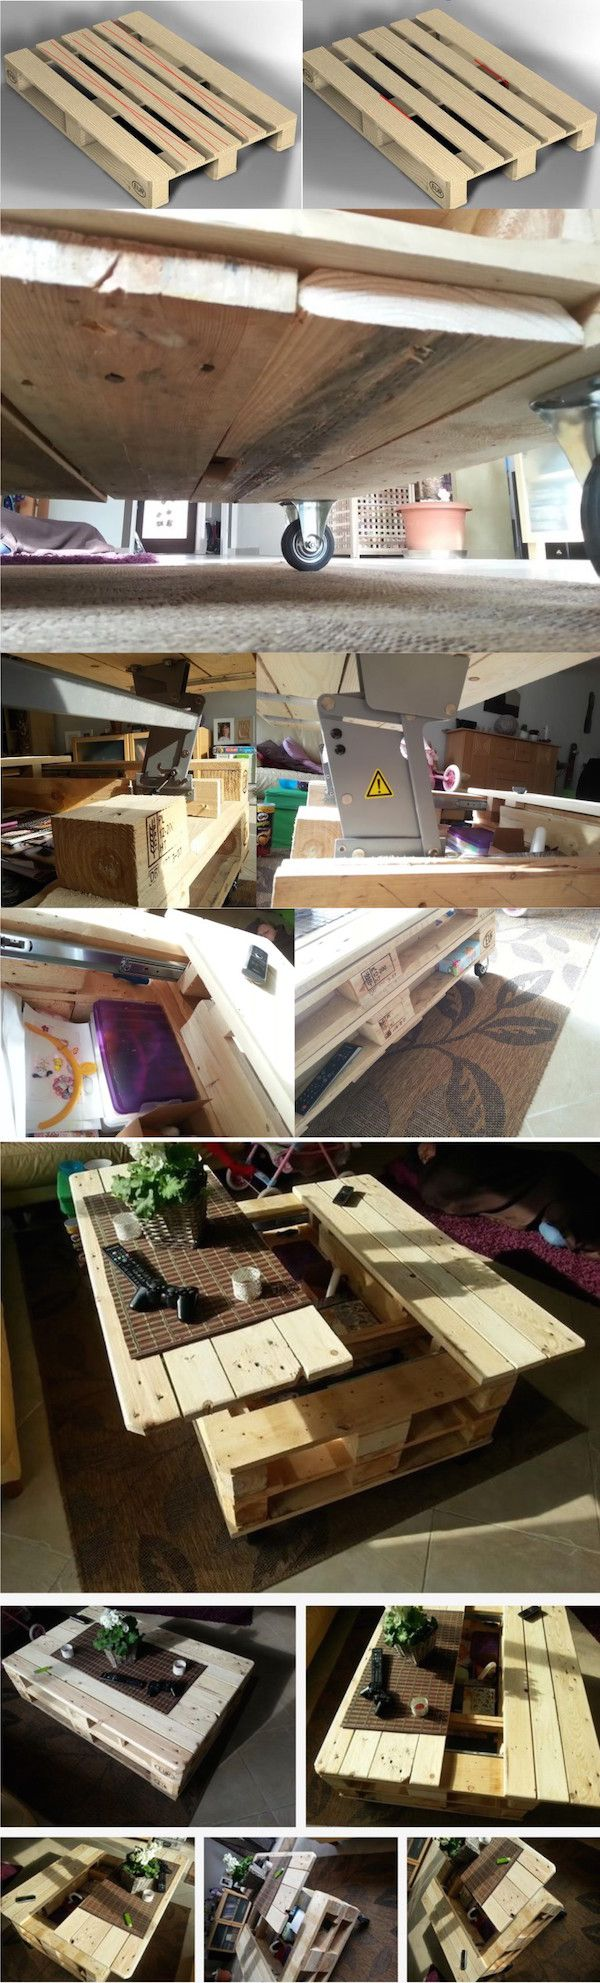 Modular Pallet Coffee Table With Storage